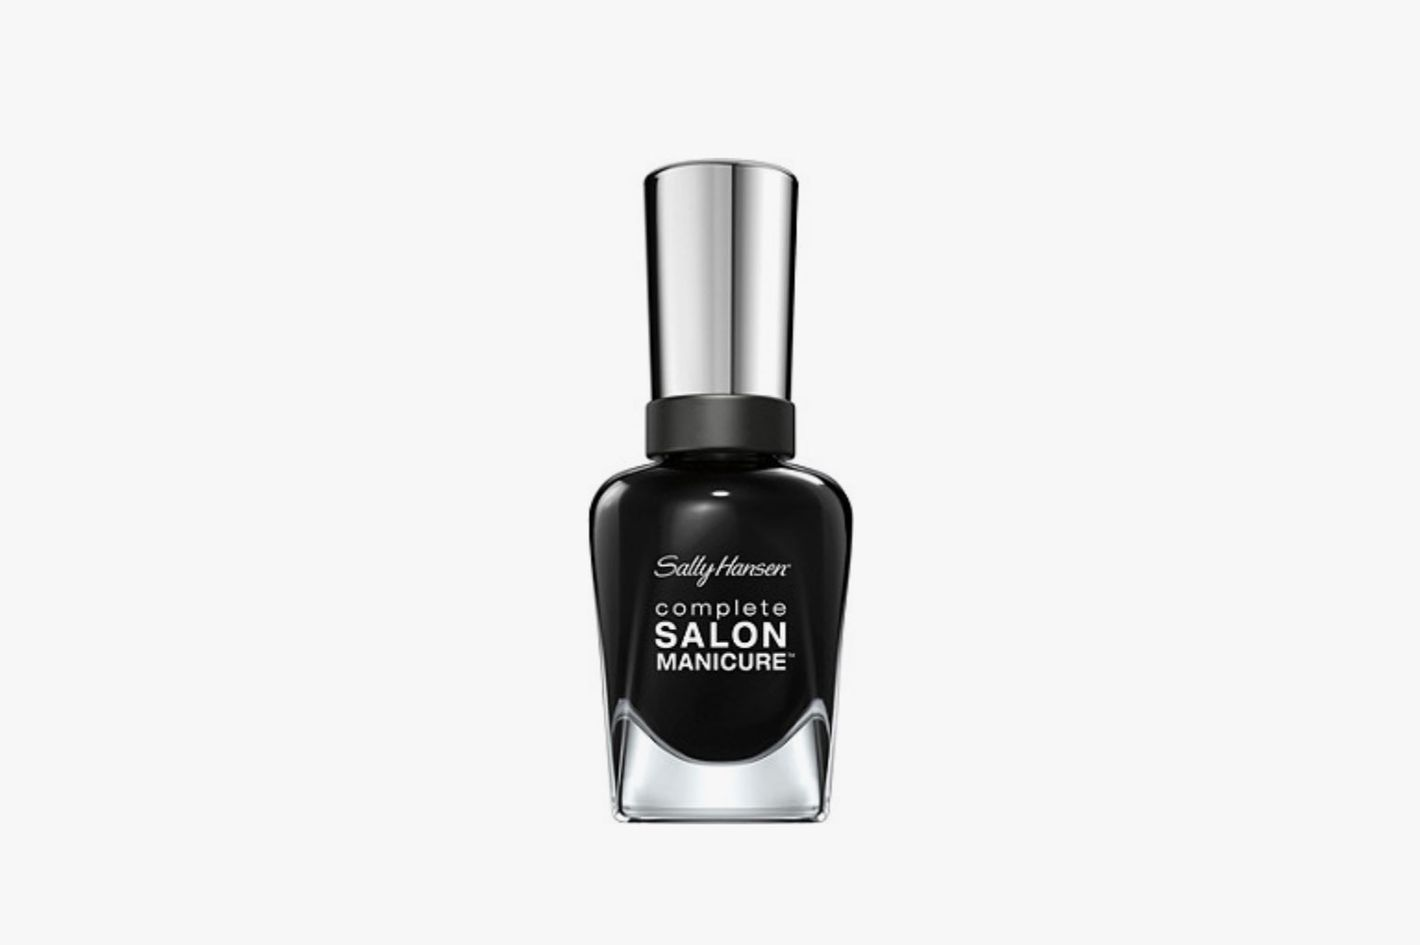 Sally Hansen Complete Salon Manicure in Hooked on Onyx